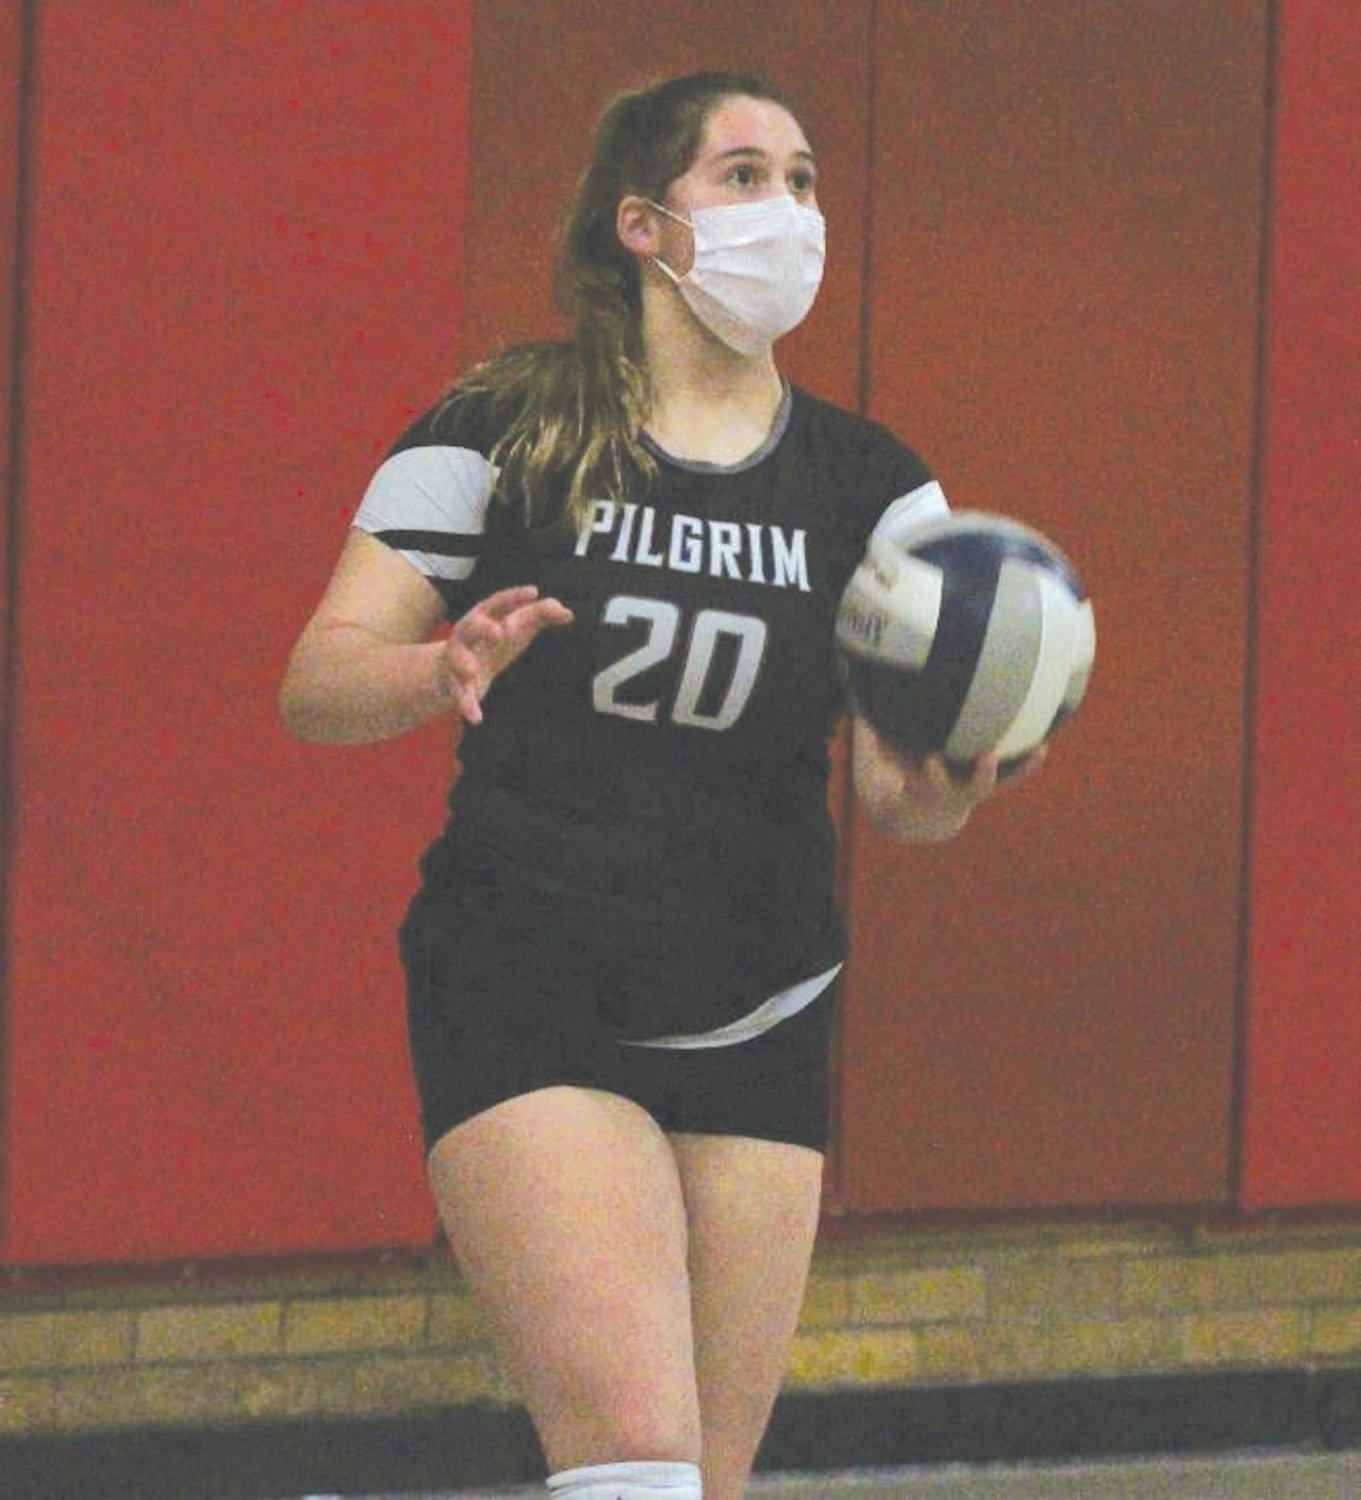 BACK IN THE WIN COLUMN: Pilgrim senior captain Kiley Chaplin gets set to serve against Tolman last week. After dropping